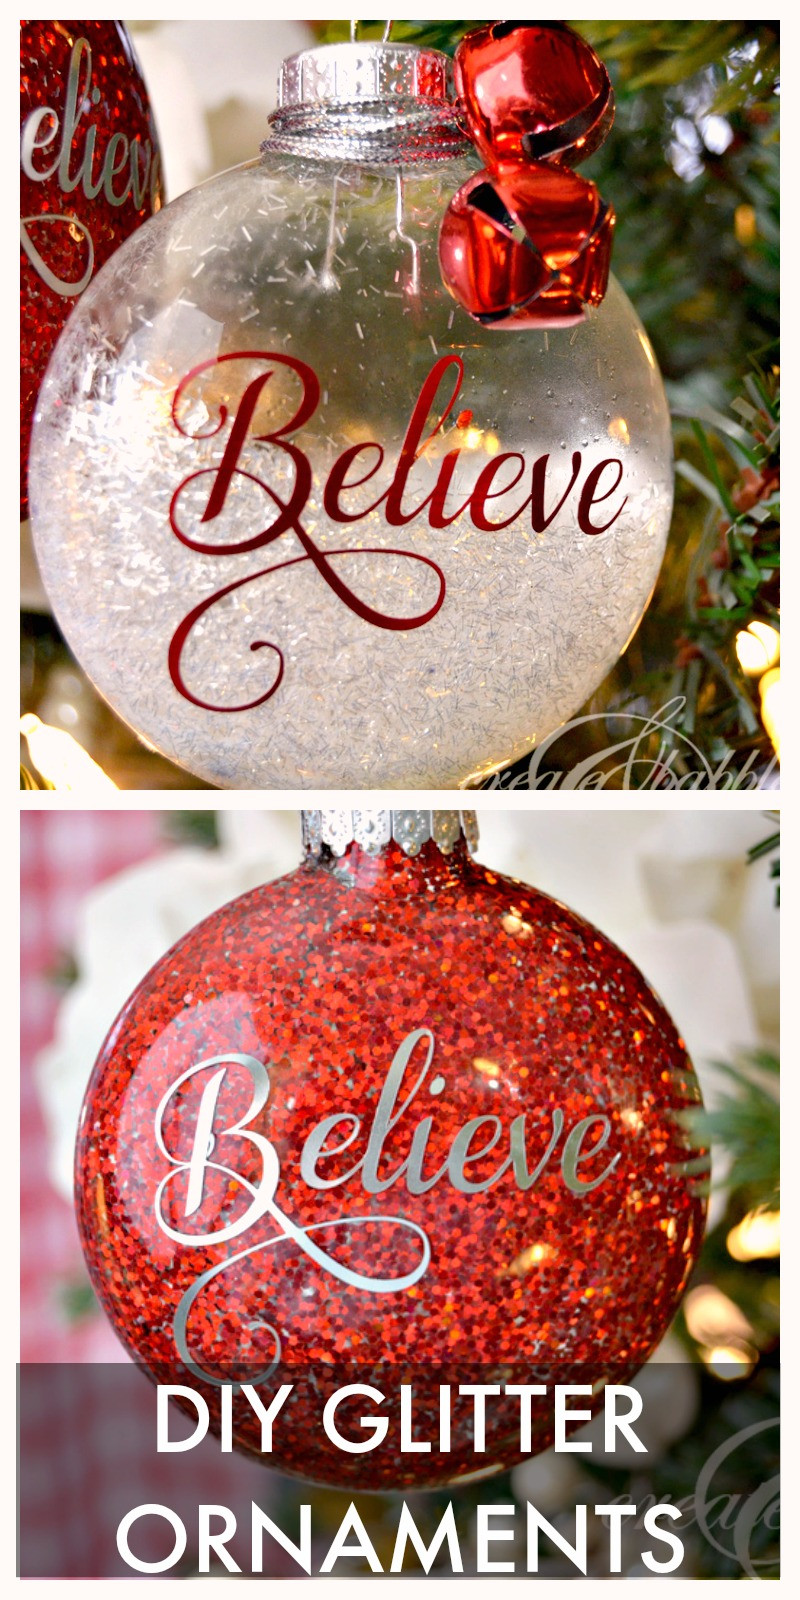 DIY Christmas Ornaments With Pictures  30 Christmas Tree Ornaments to Make TGIF This Grandma